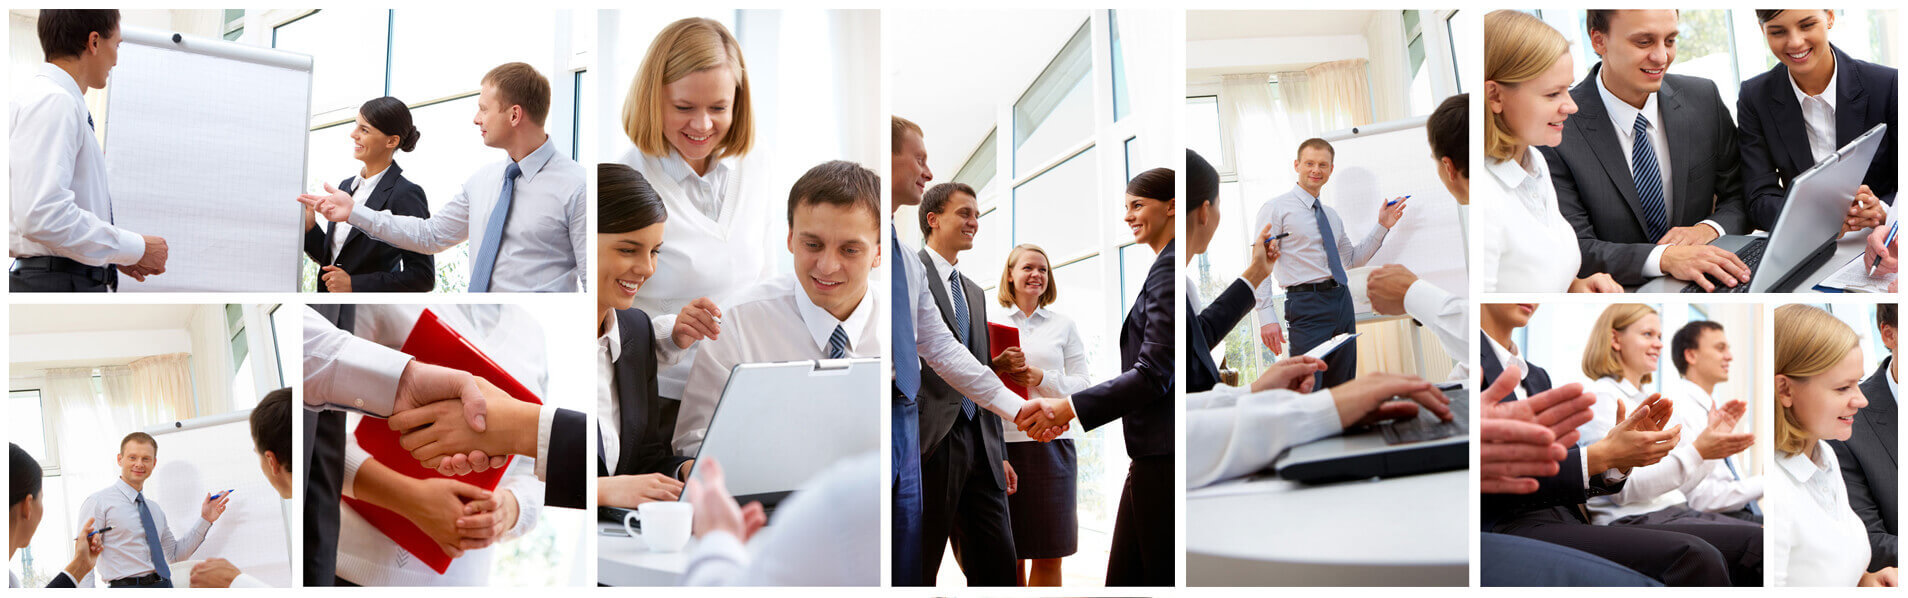 image of many happy employees in an office enviroment